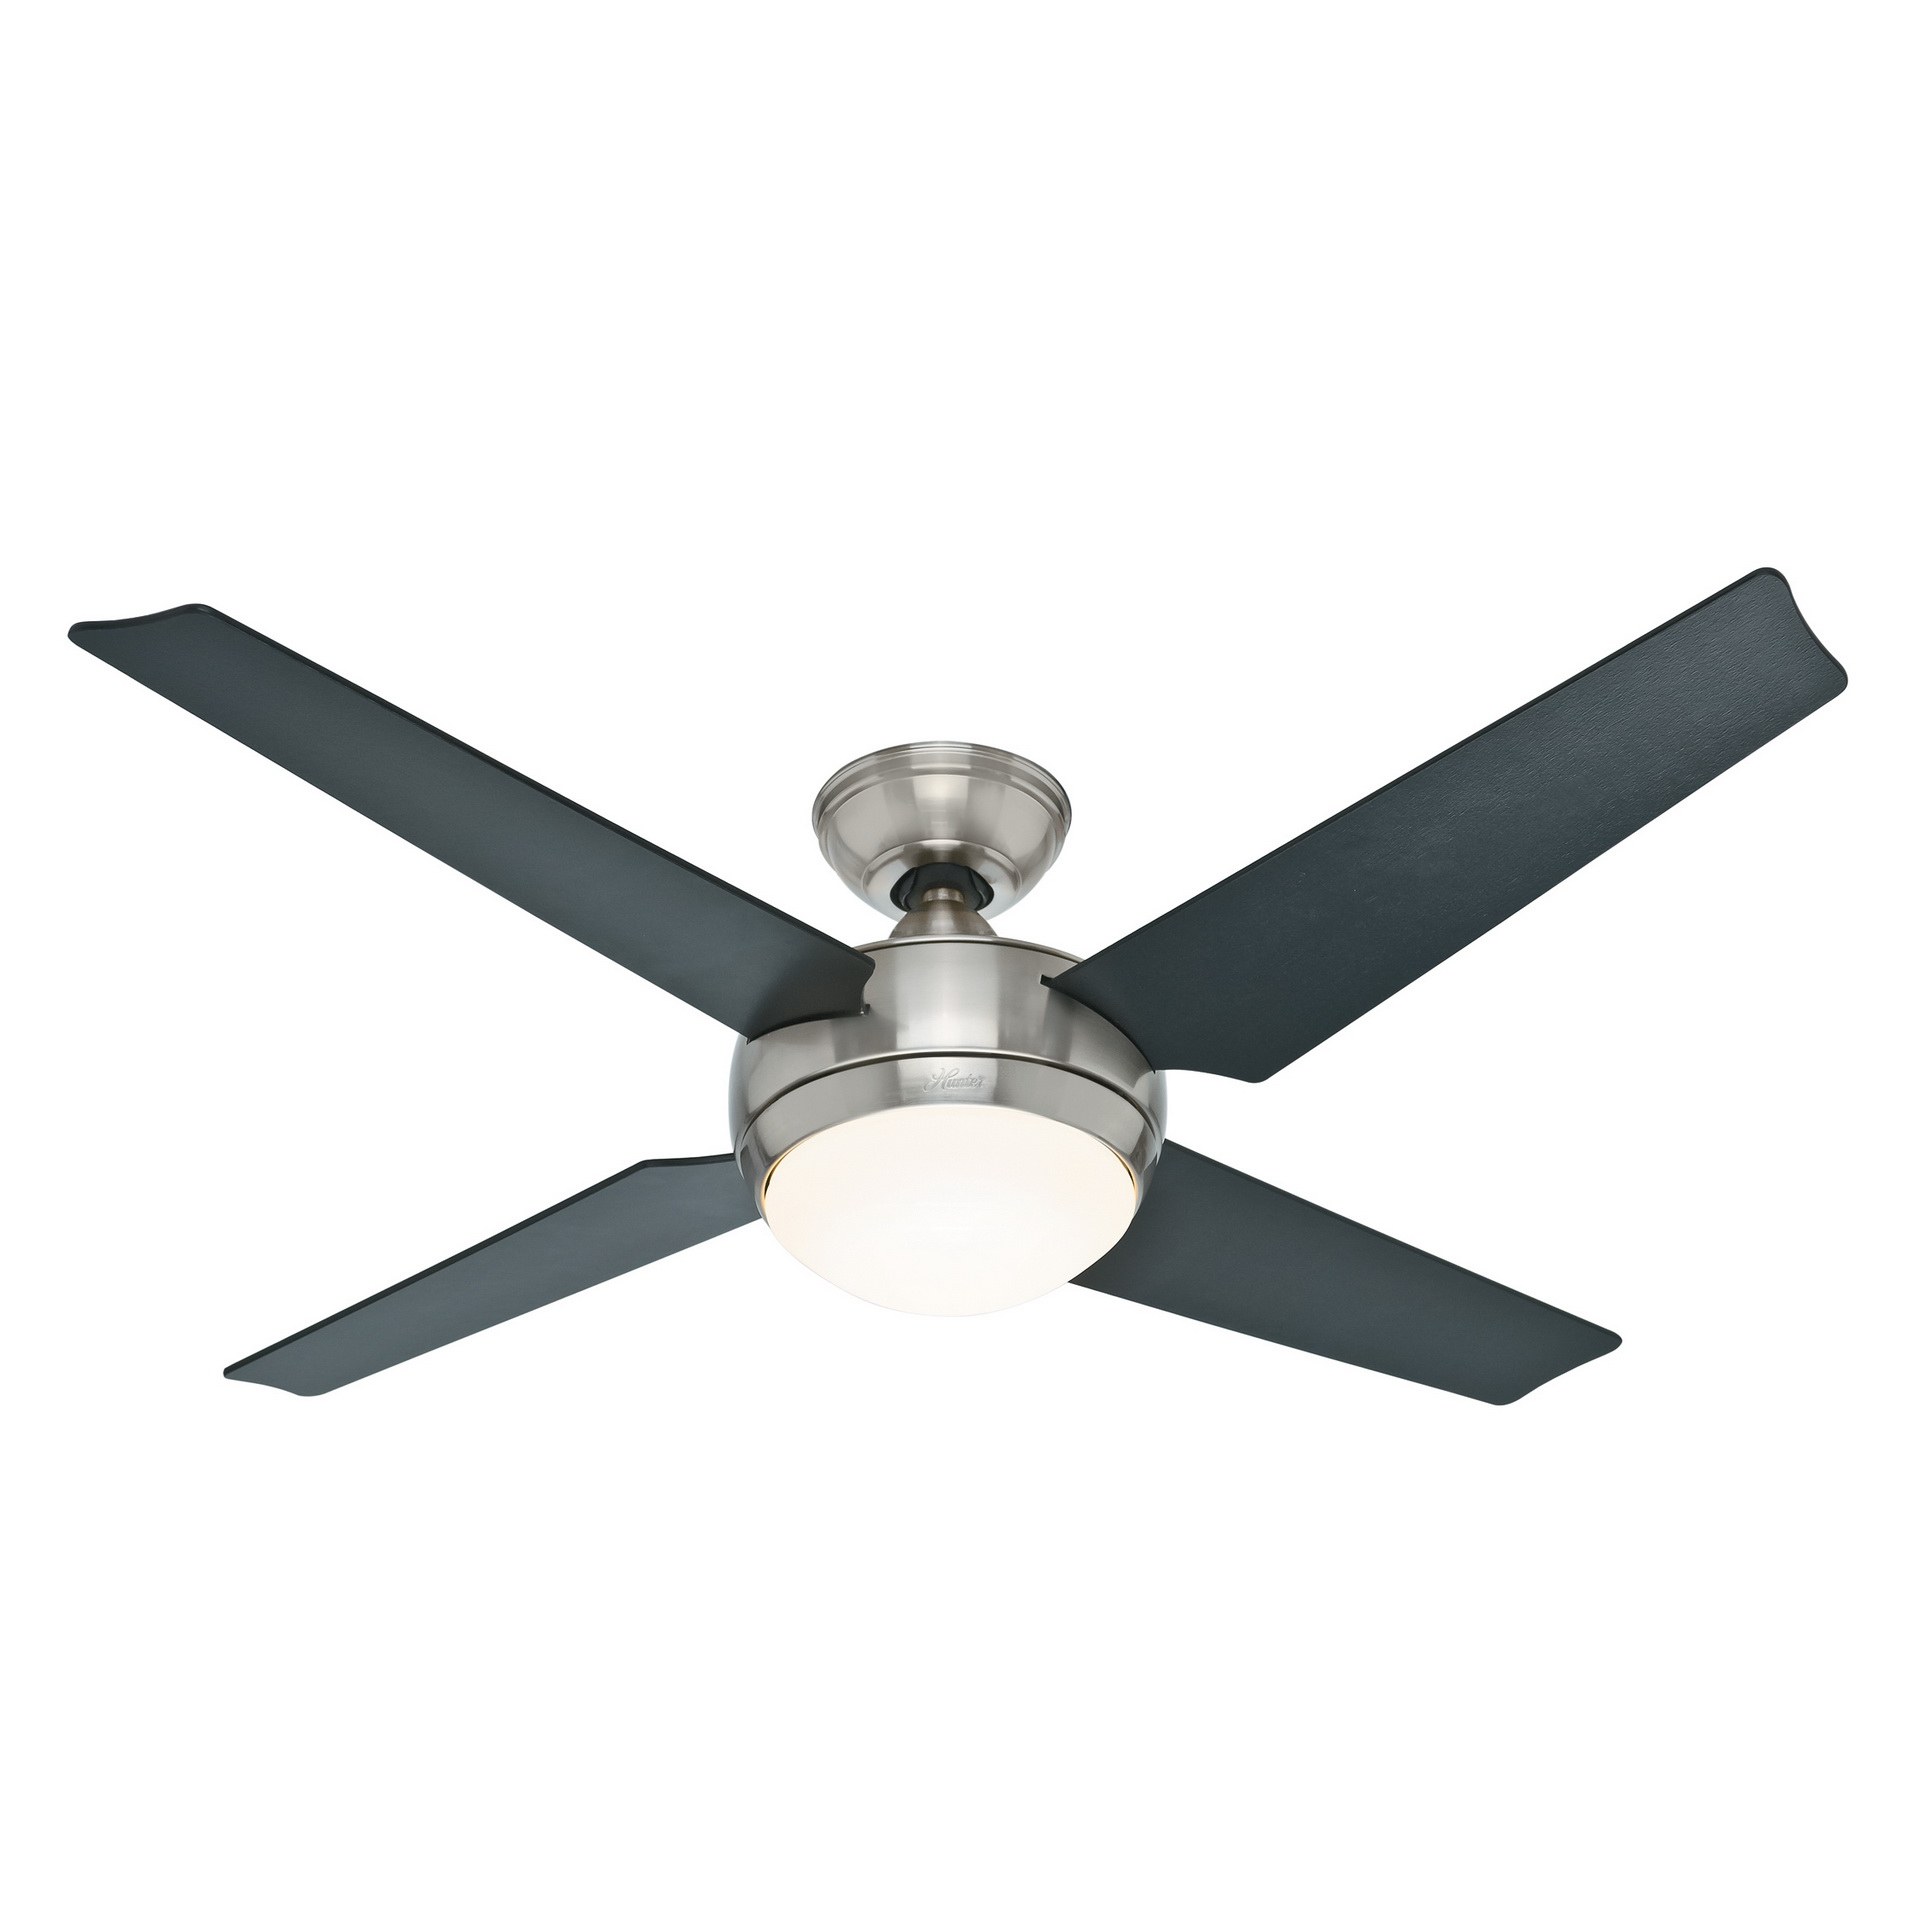 design with option the unique ceiling inch fan wood twin star distressed blades pin ceilings blade room fans side two tropical double california company ii and